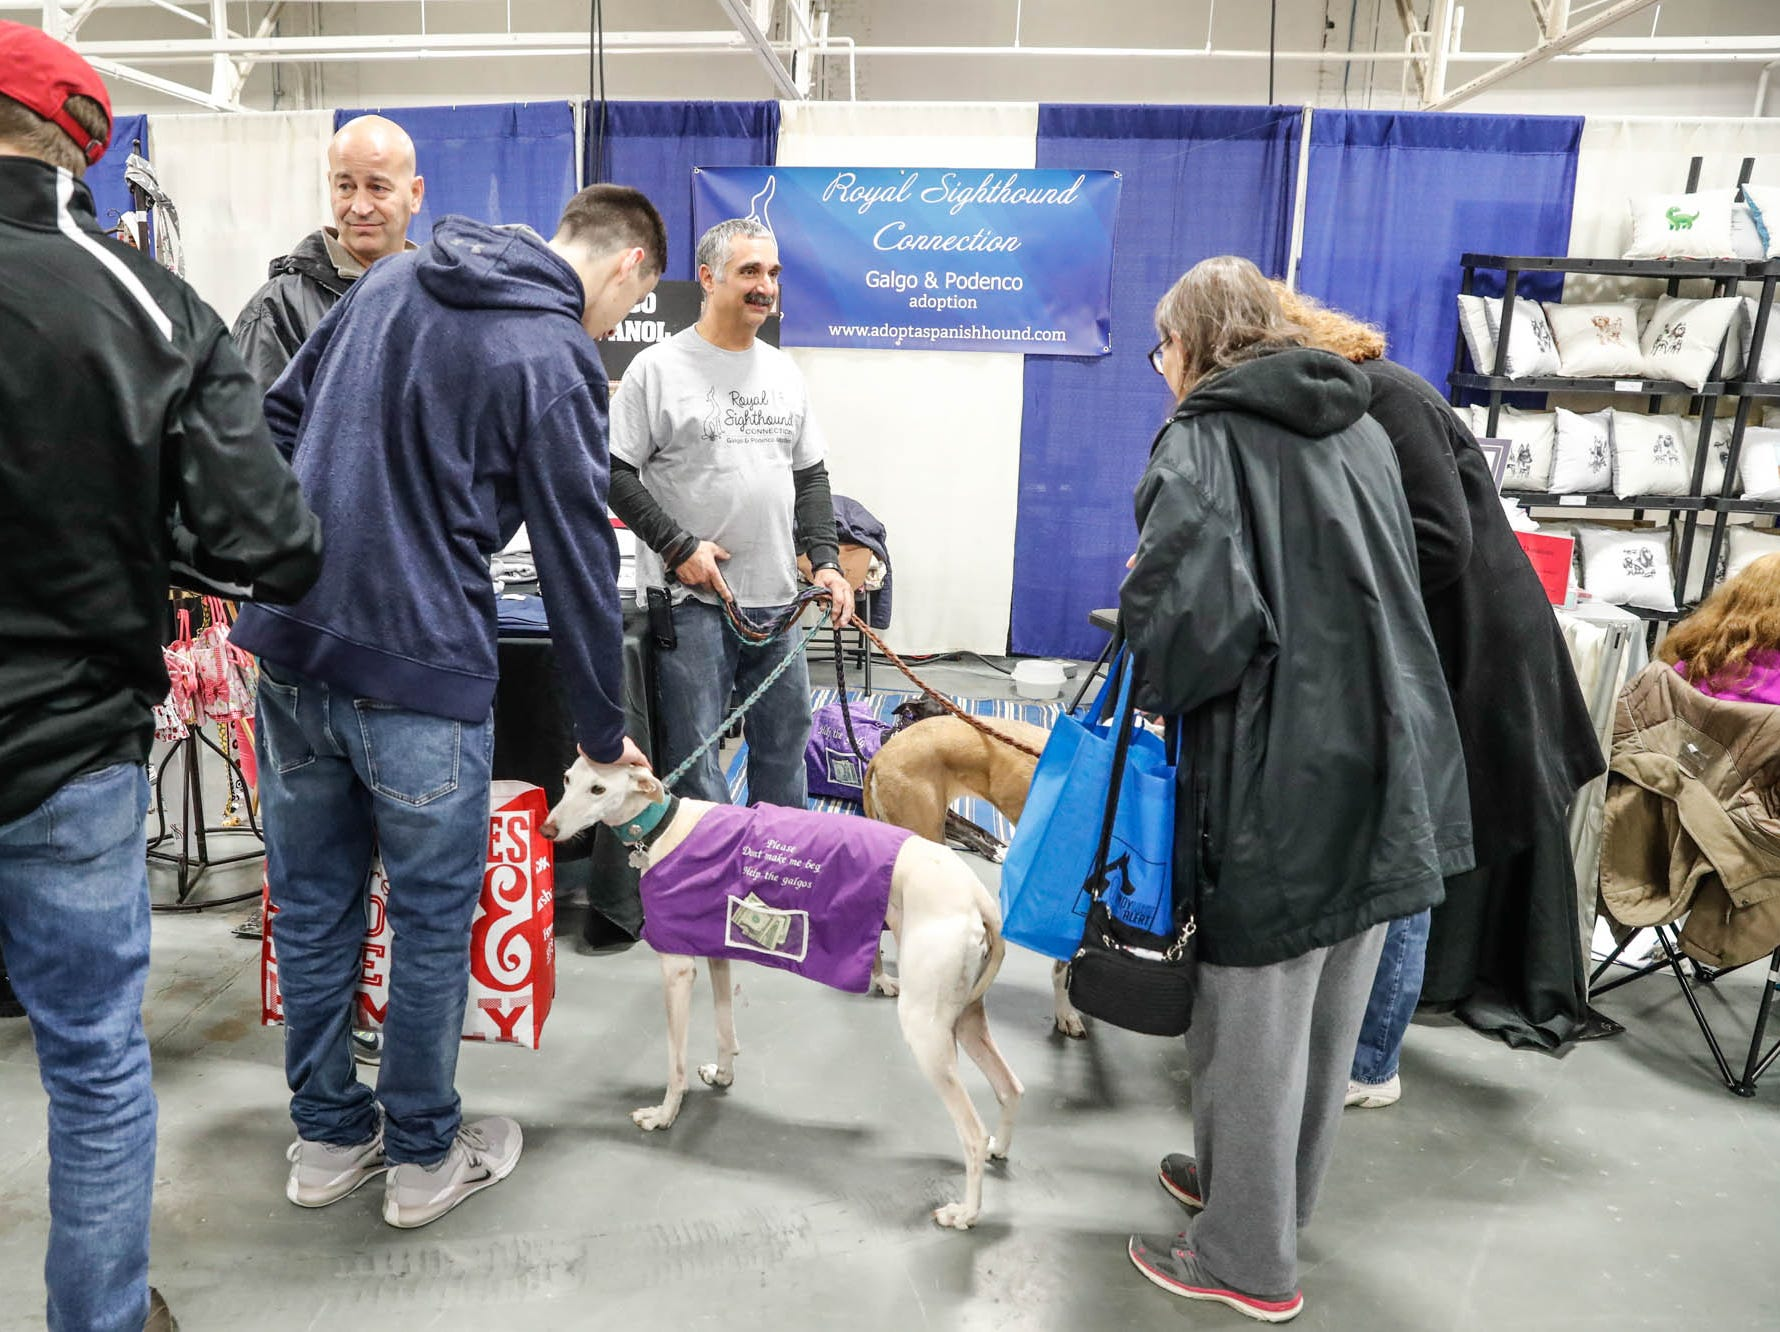 Spanish grey hounds meets and greets guests at the Royal Sighthound Connection booth at the Great Indy Pet Expo, held at the Indiana State Fairgrounds on Sat. Nov. 10, 2018. Royal Sighthound Connection rescues Spanish greyhounds and and podencos from overseas and helps to find them forever homes in the U.S.A.